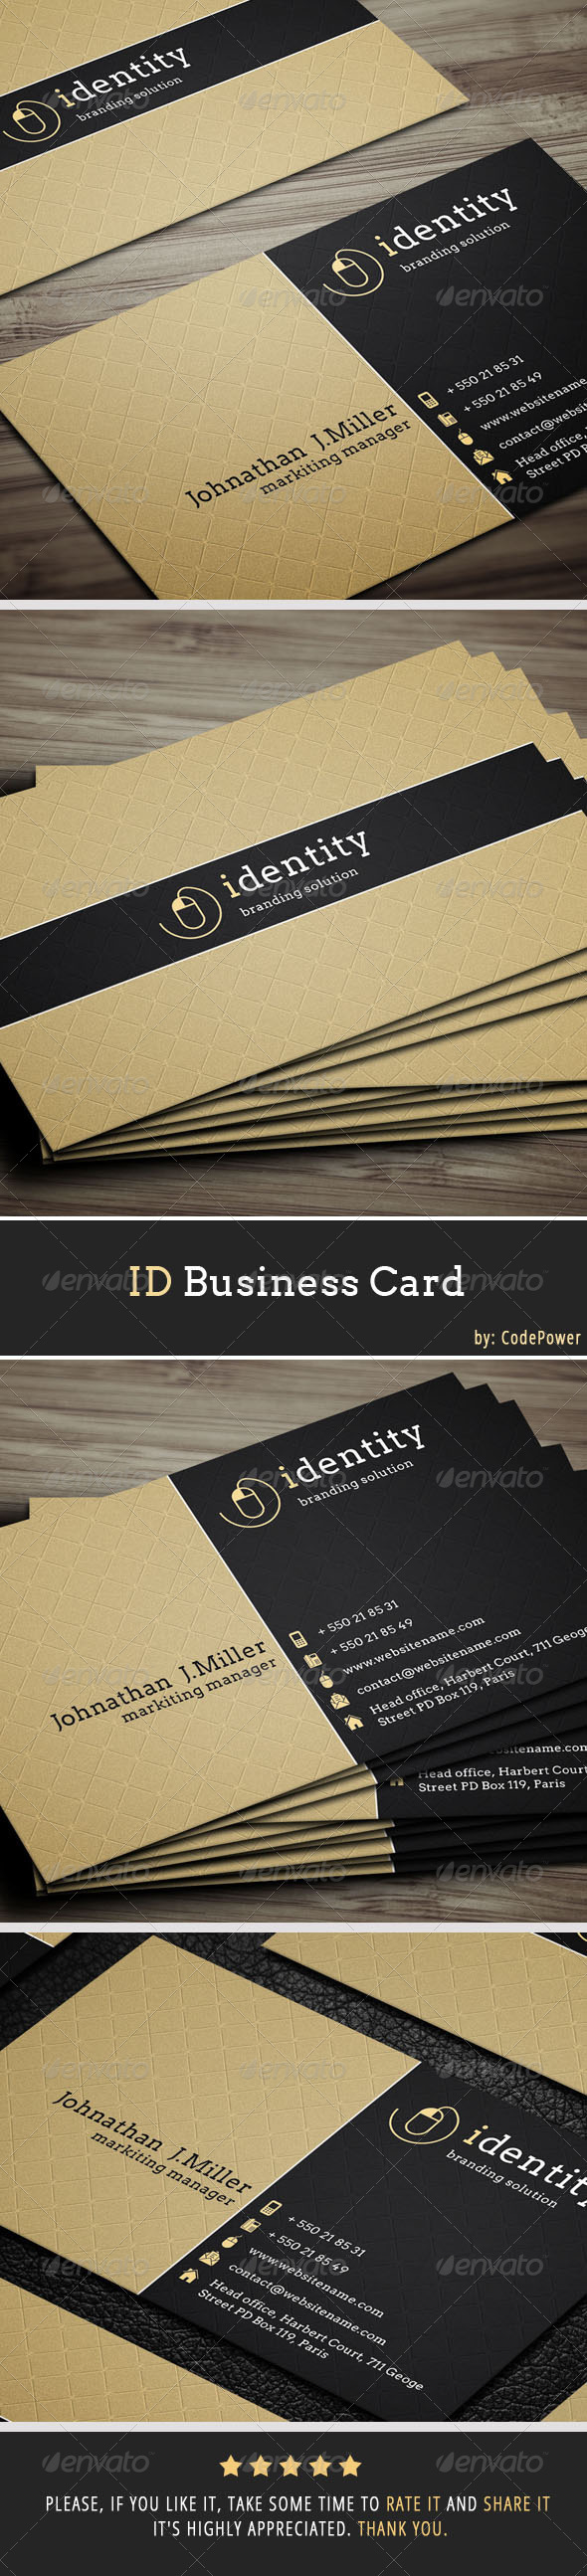 ID Business Card - Creative Business Cards